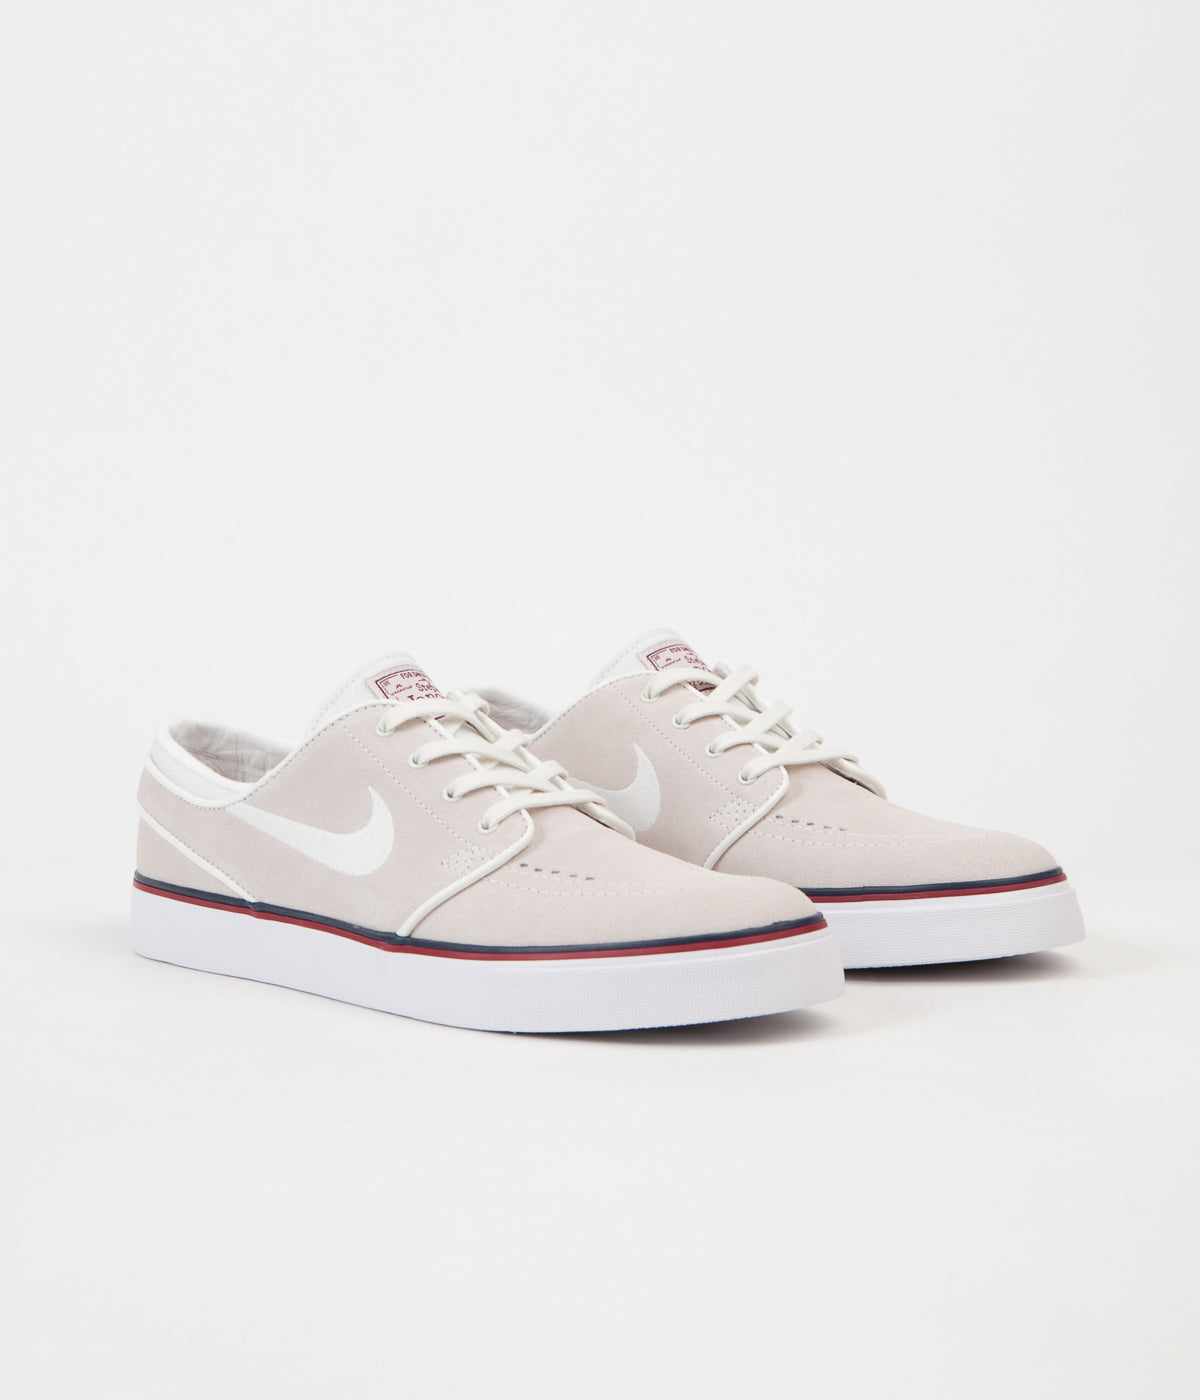 Nike SB Womens Stefan Janoski Shoes - Summit White / Ivory - Team Red - Obsidian